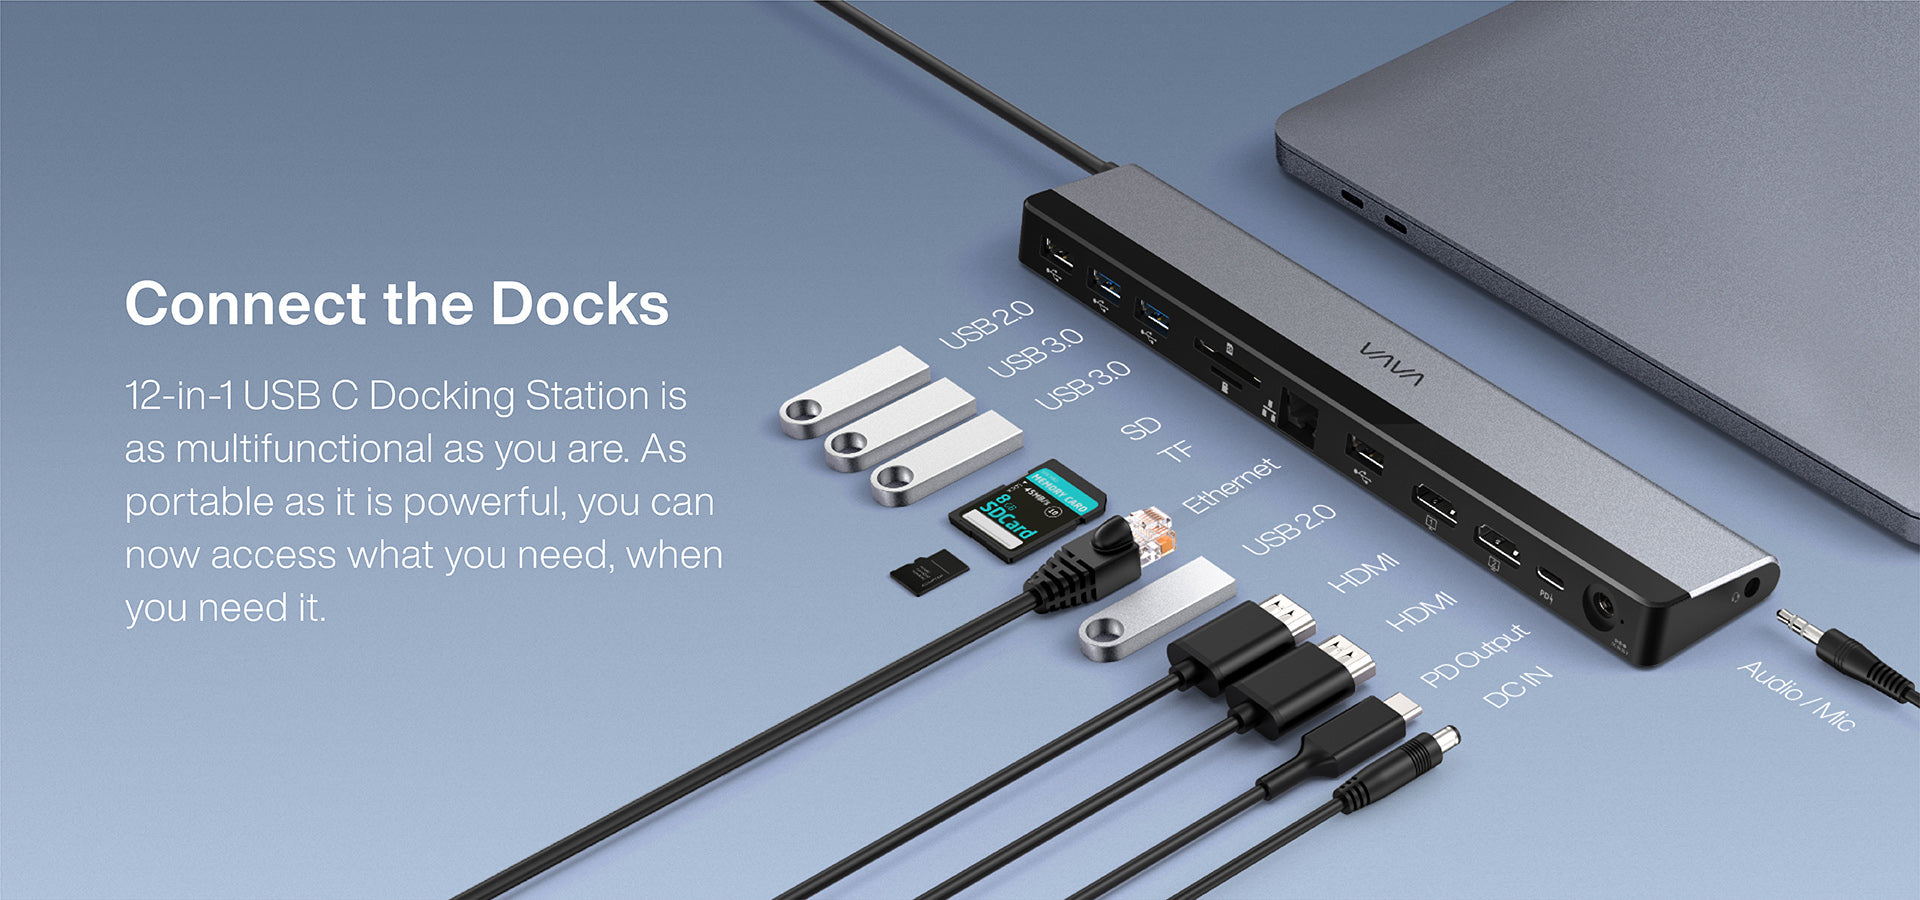 Connect the Docks